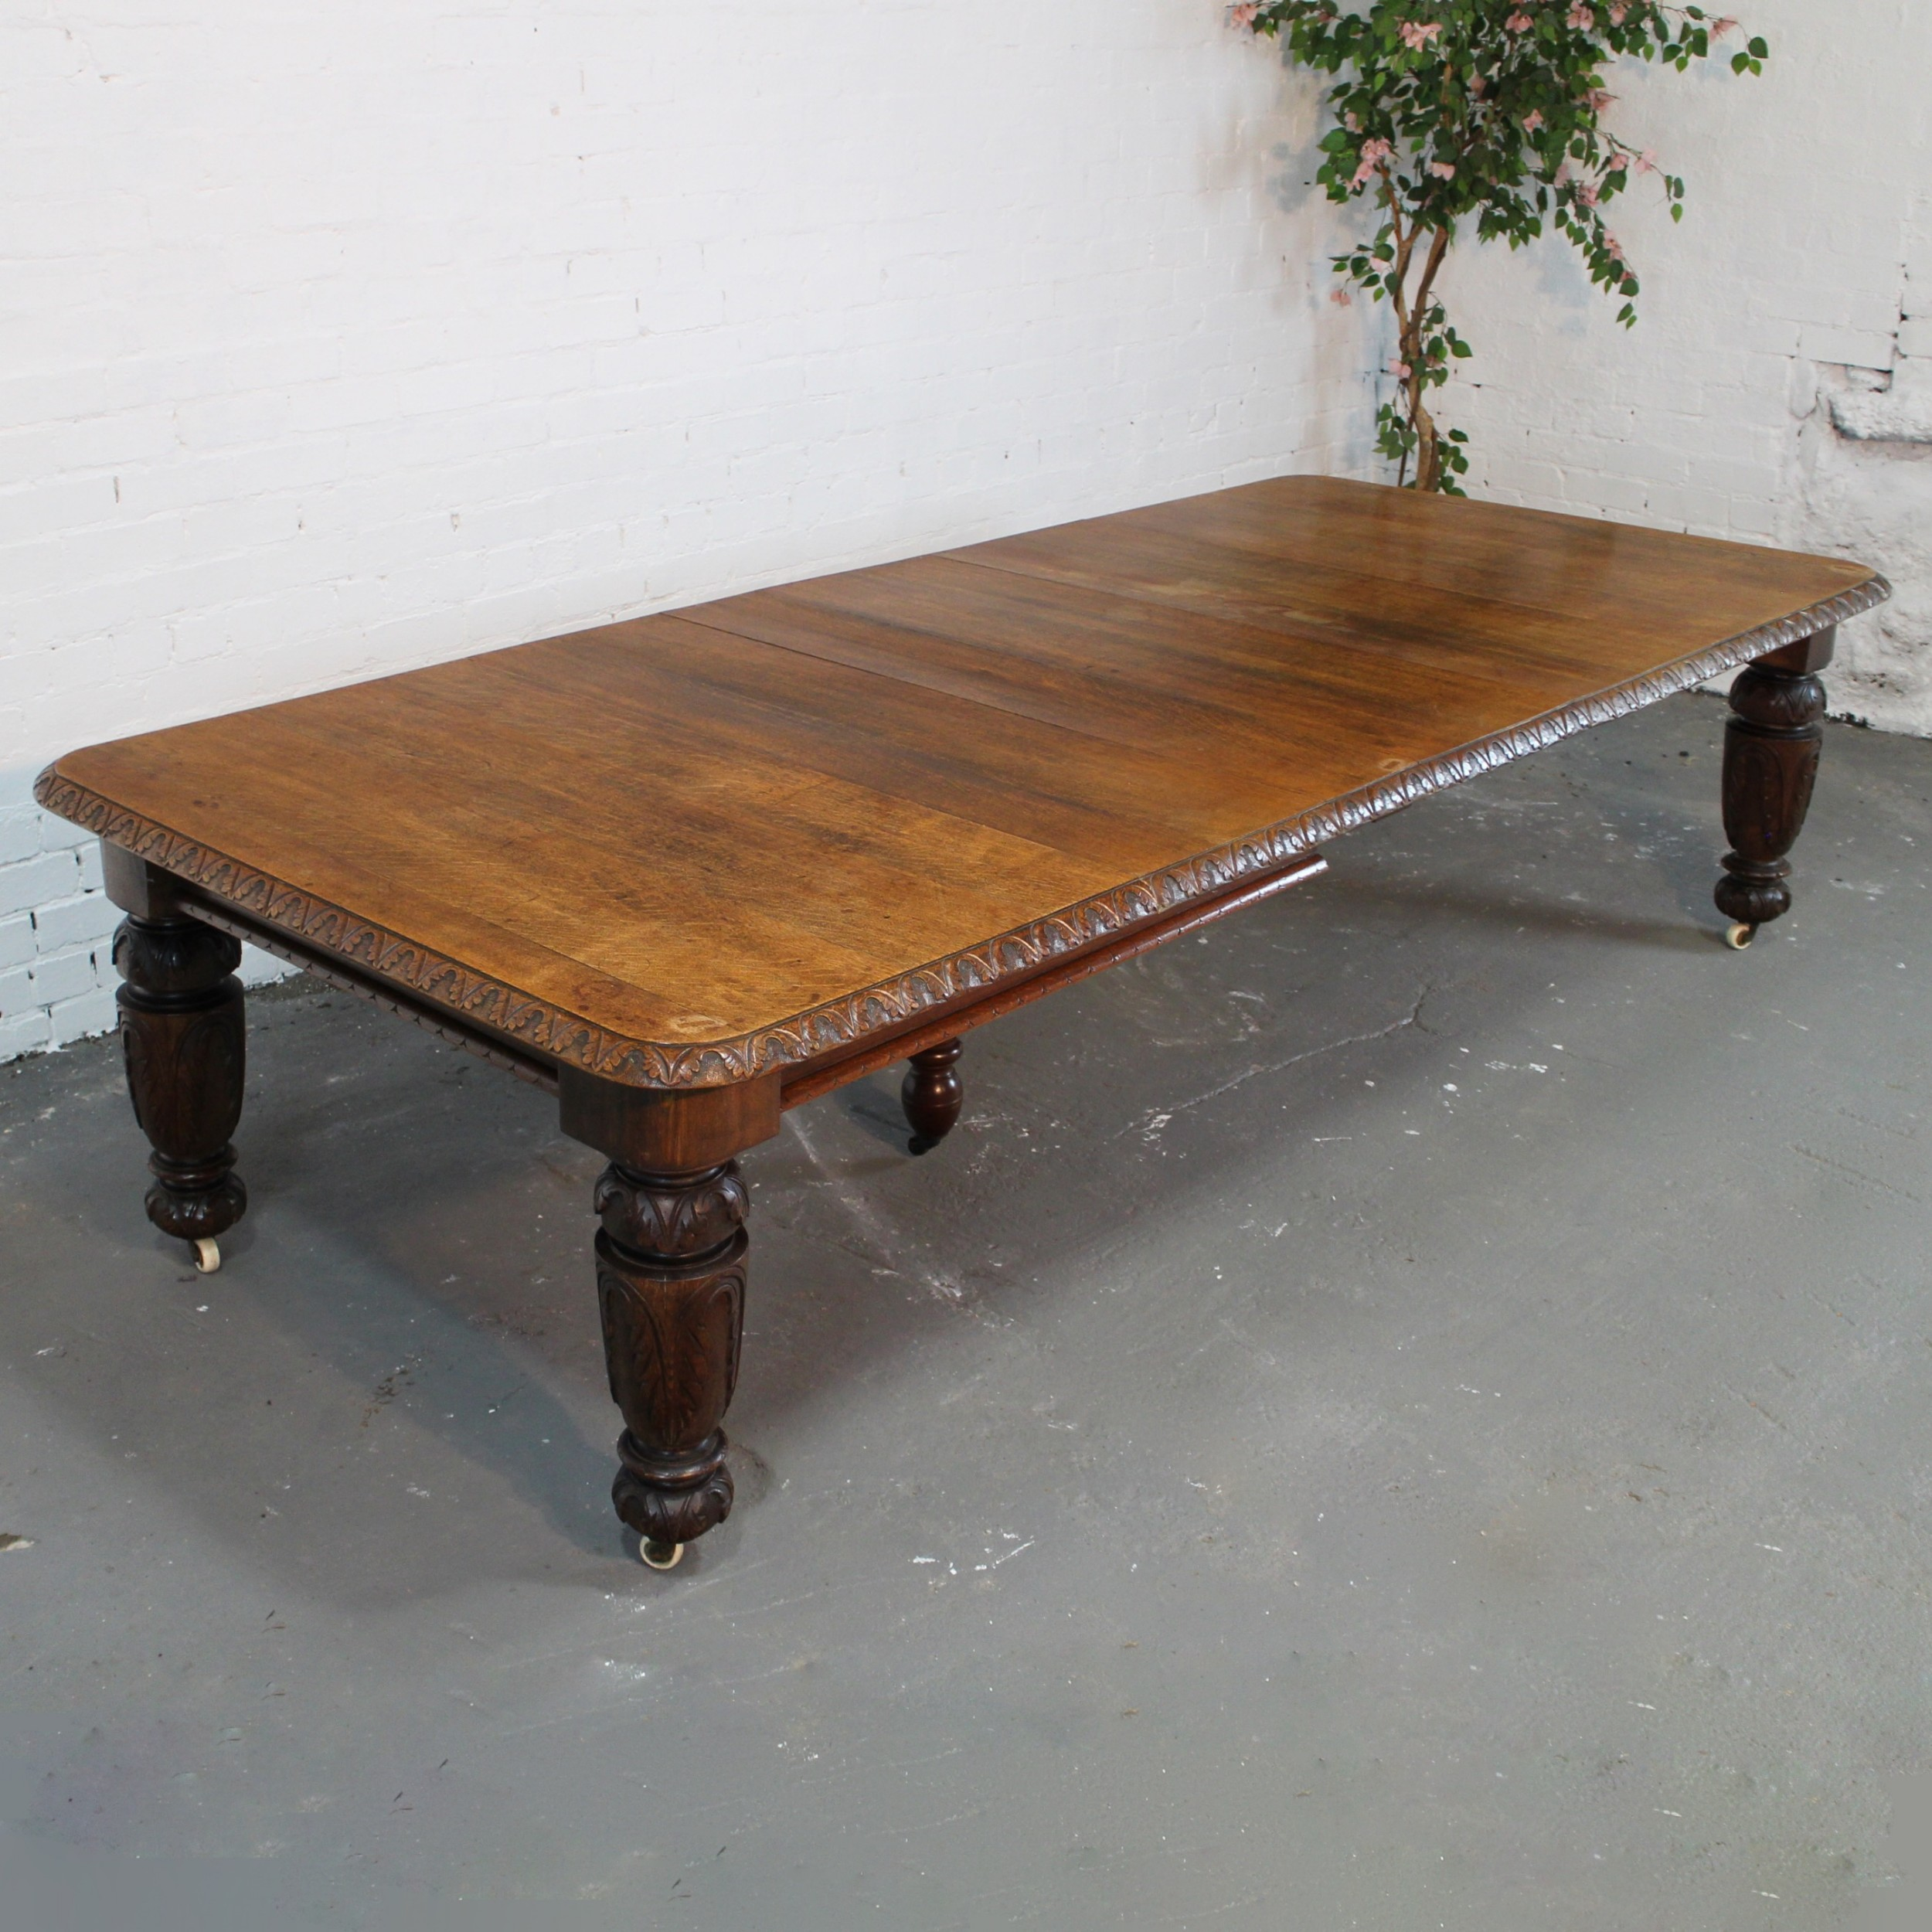 Dining Table Seats 12: 9ft9 Victorian Oak Extending Dining Table, Seats 12